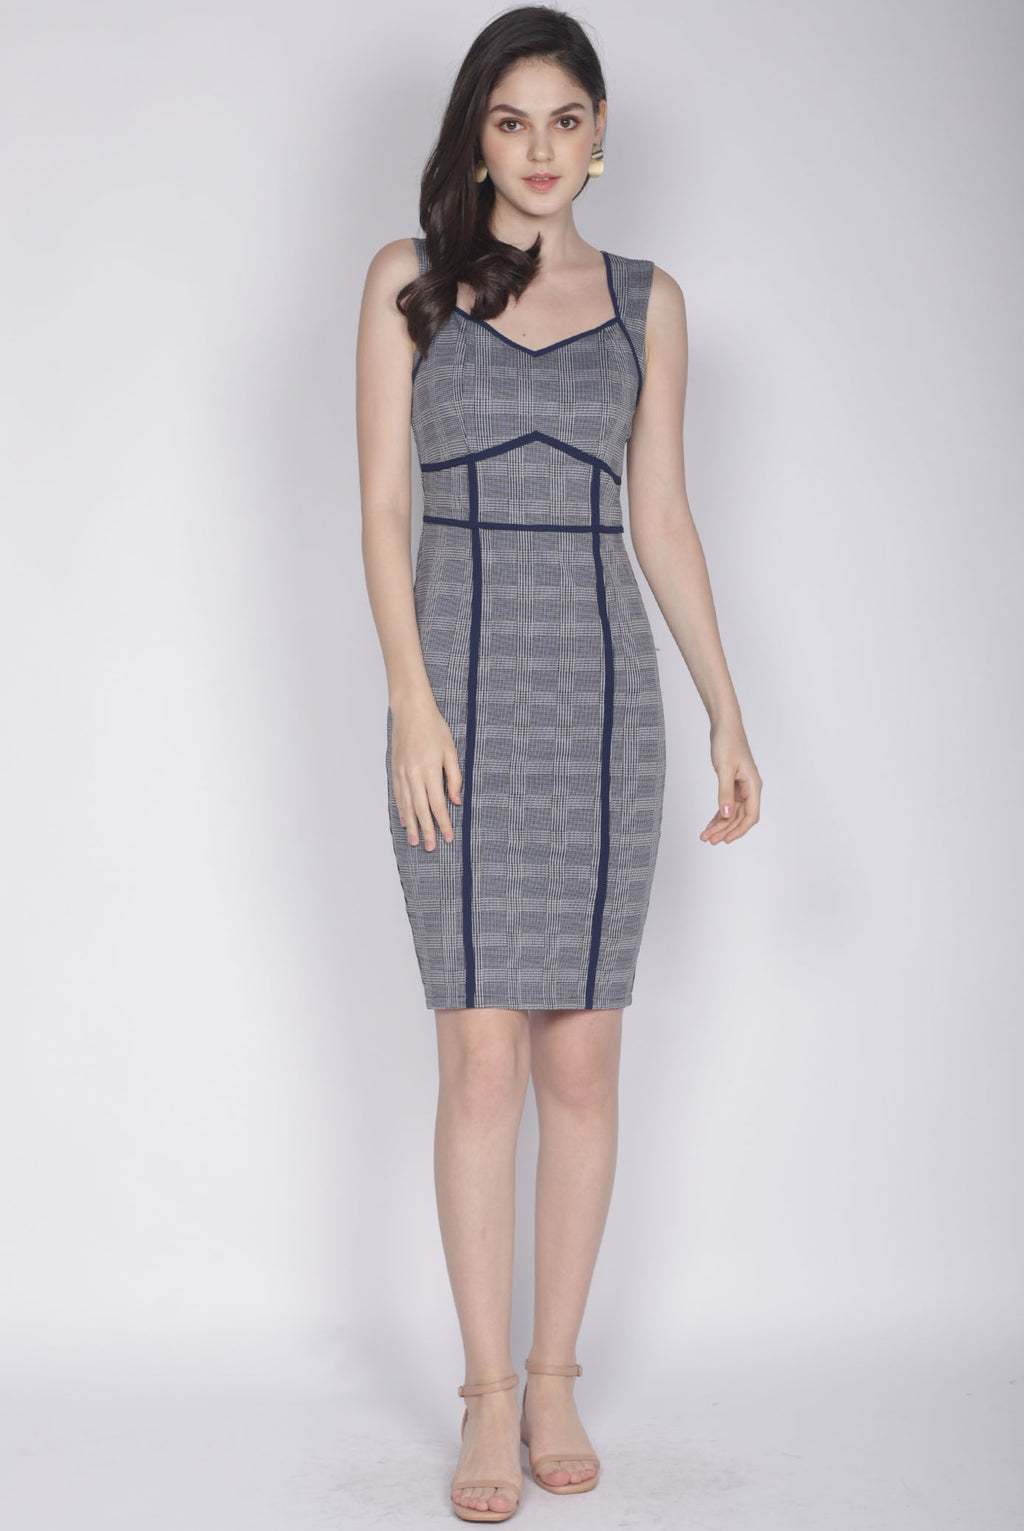 *Premium* Dalisay Plaids Pencil Dress In Navy Blue